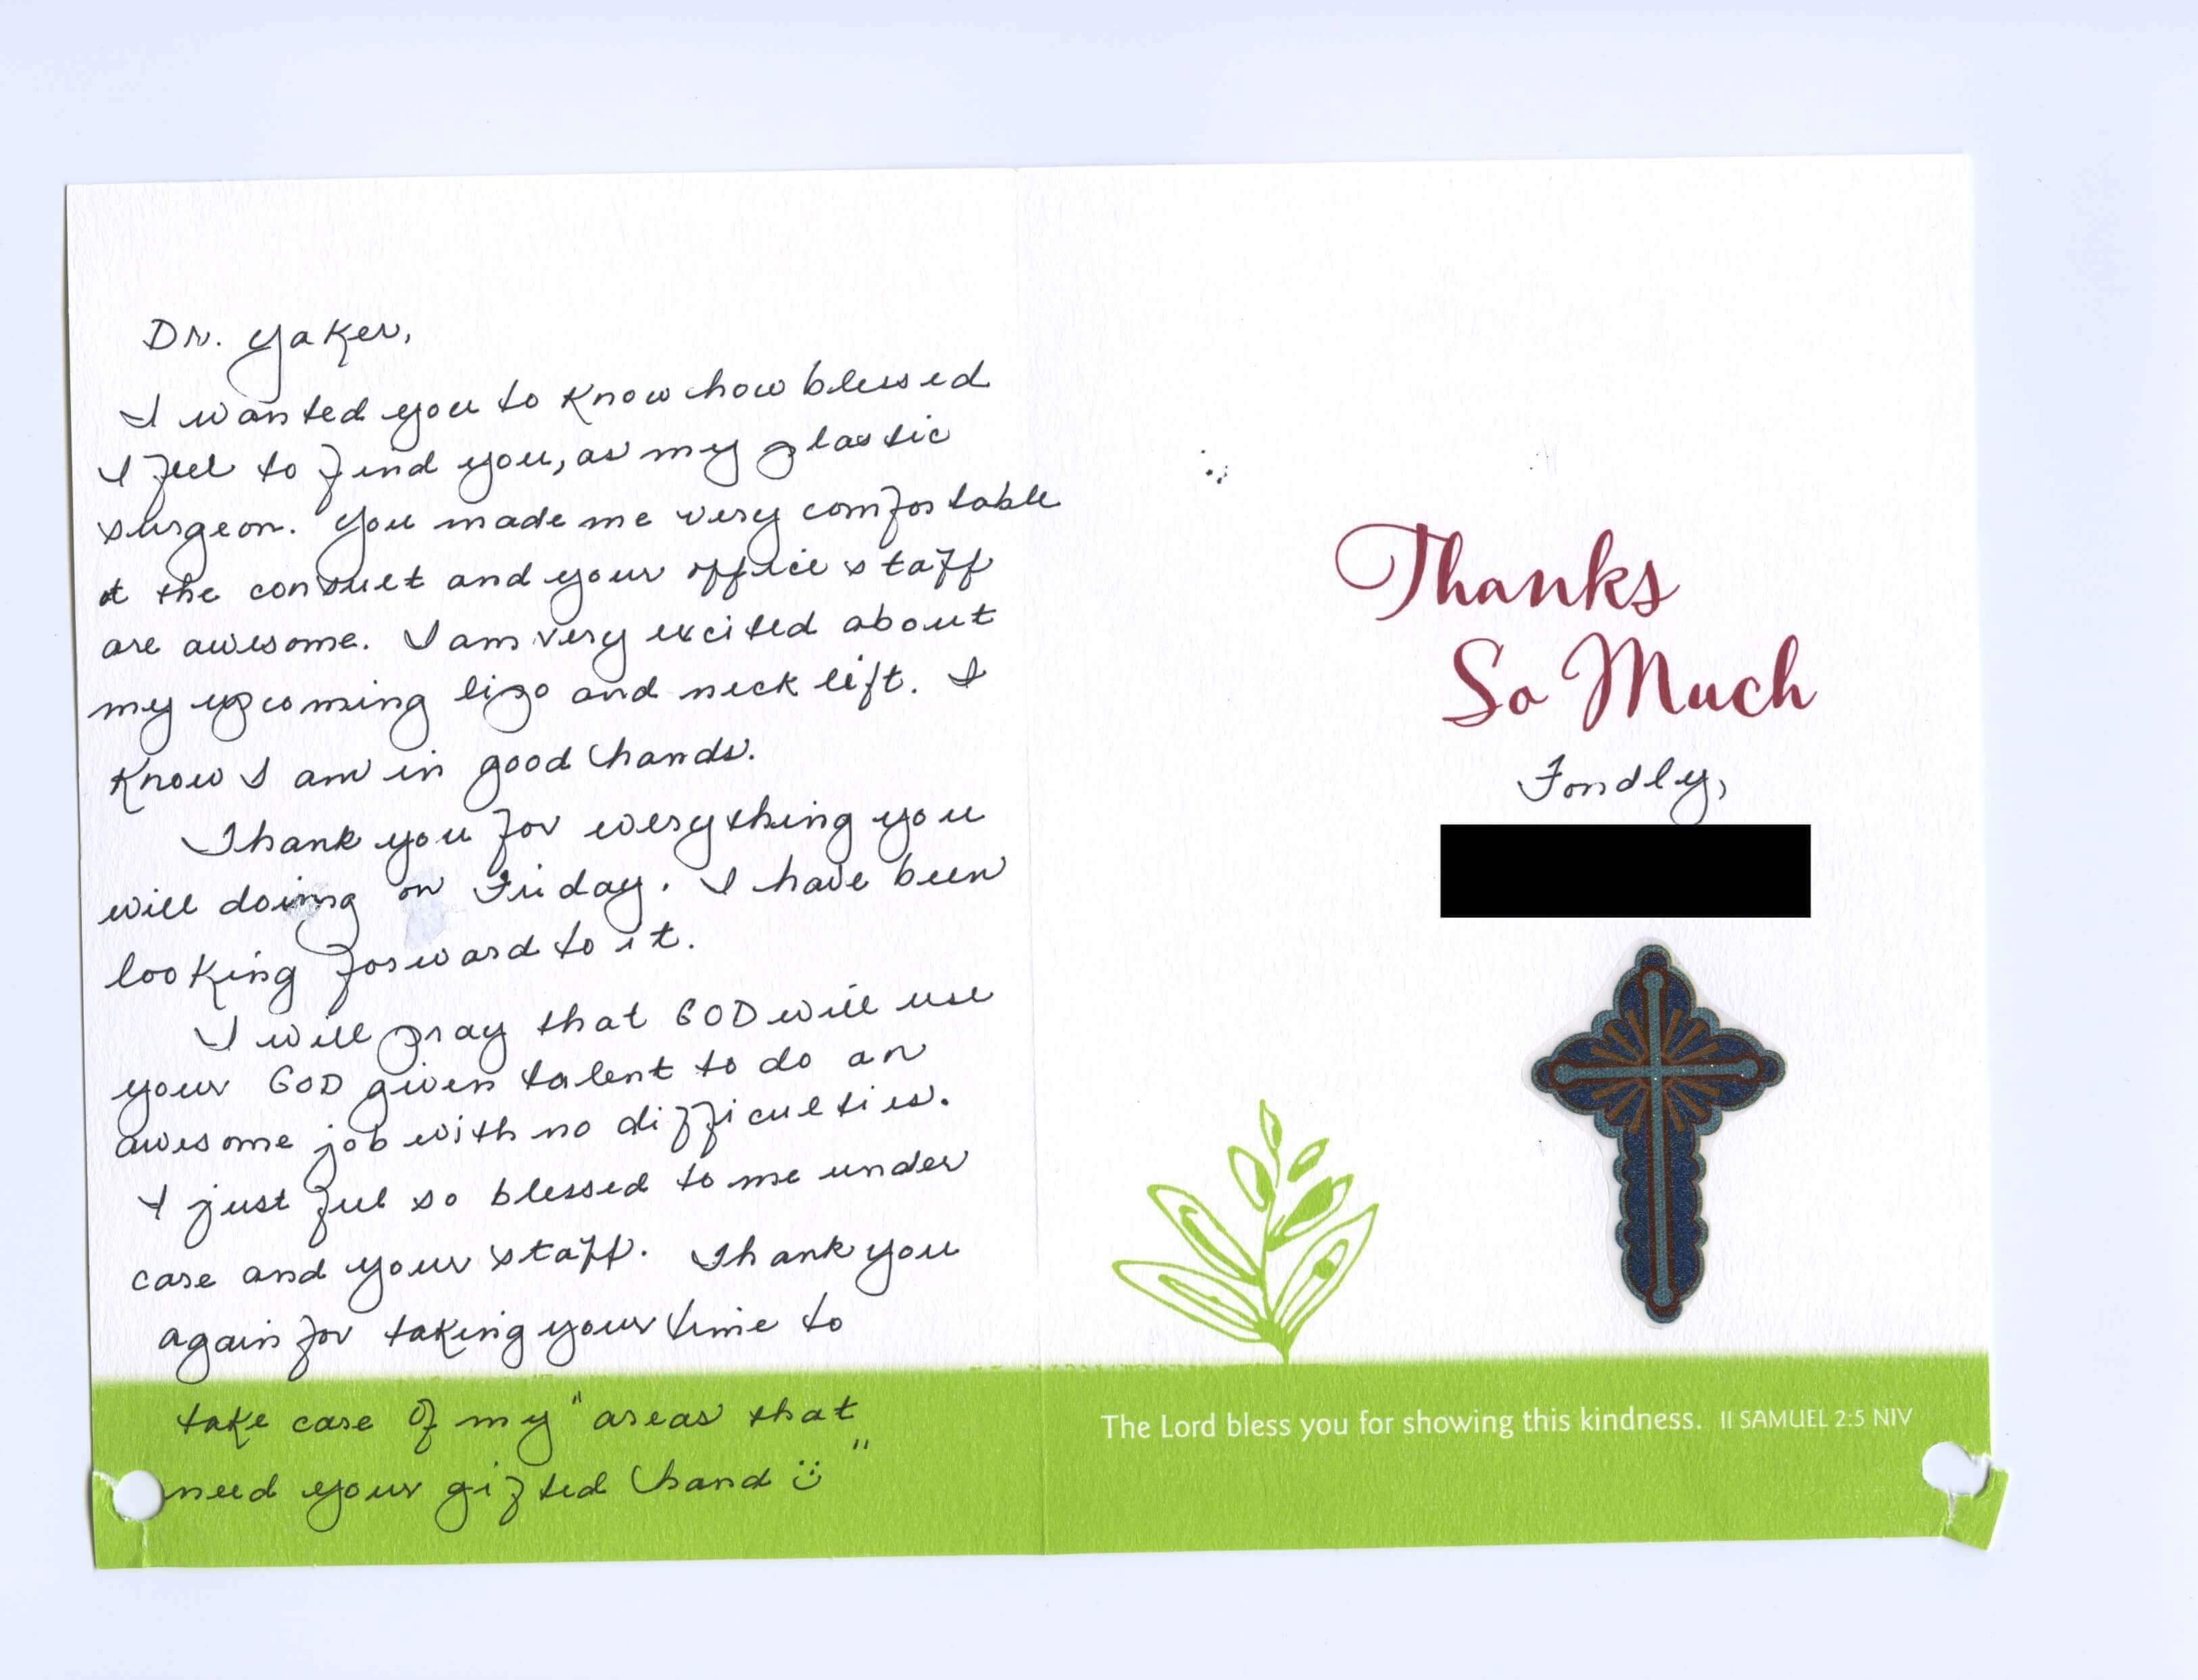 Dr. Yaker Thank You Card 16